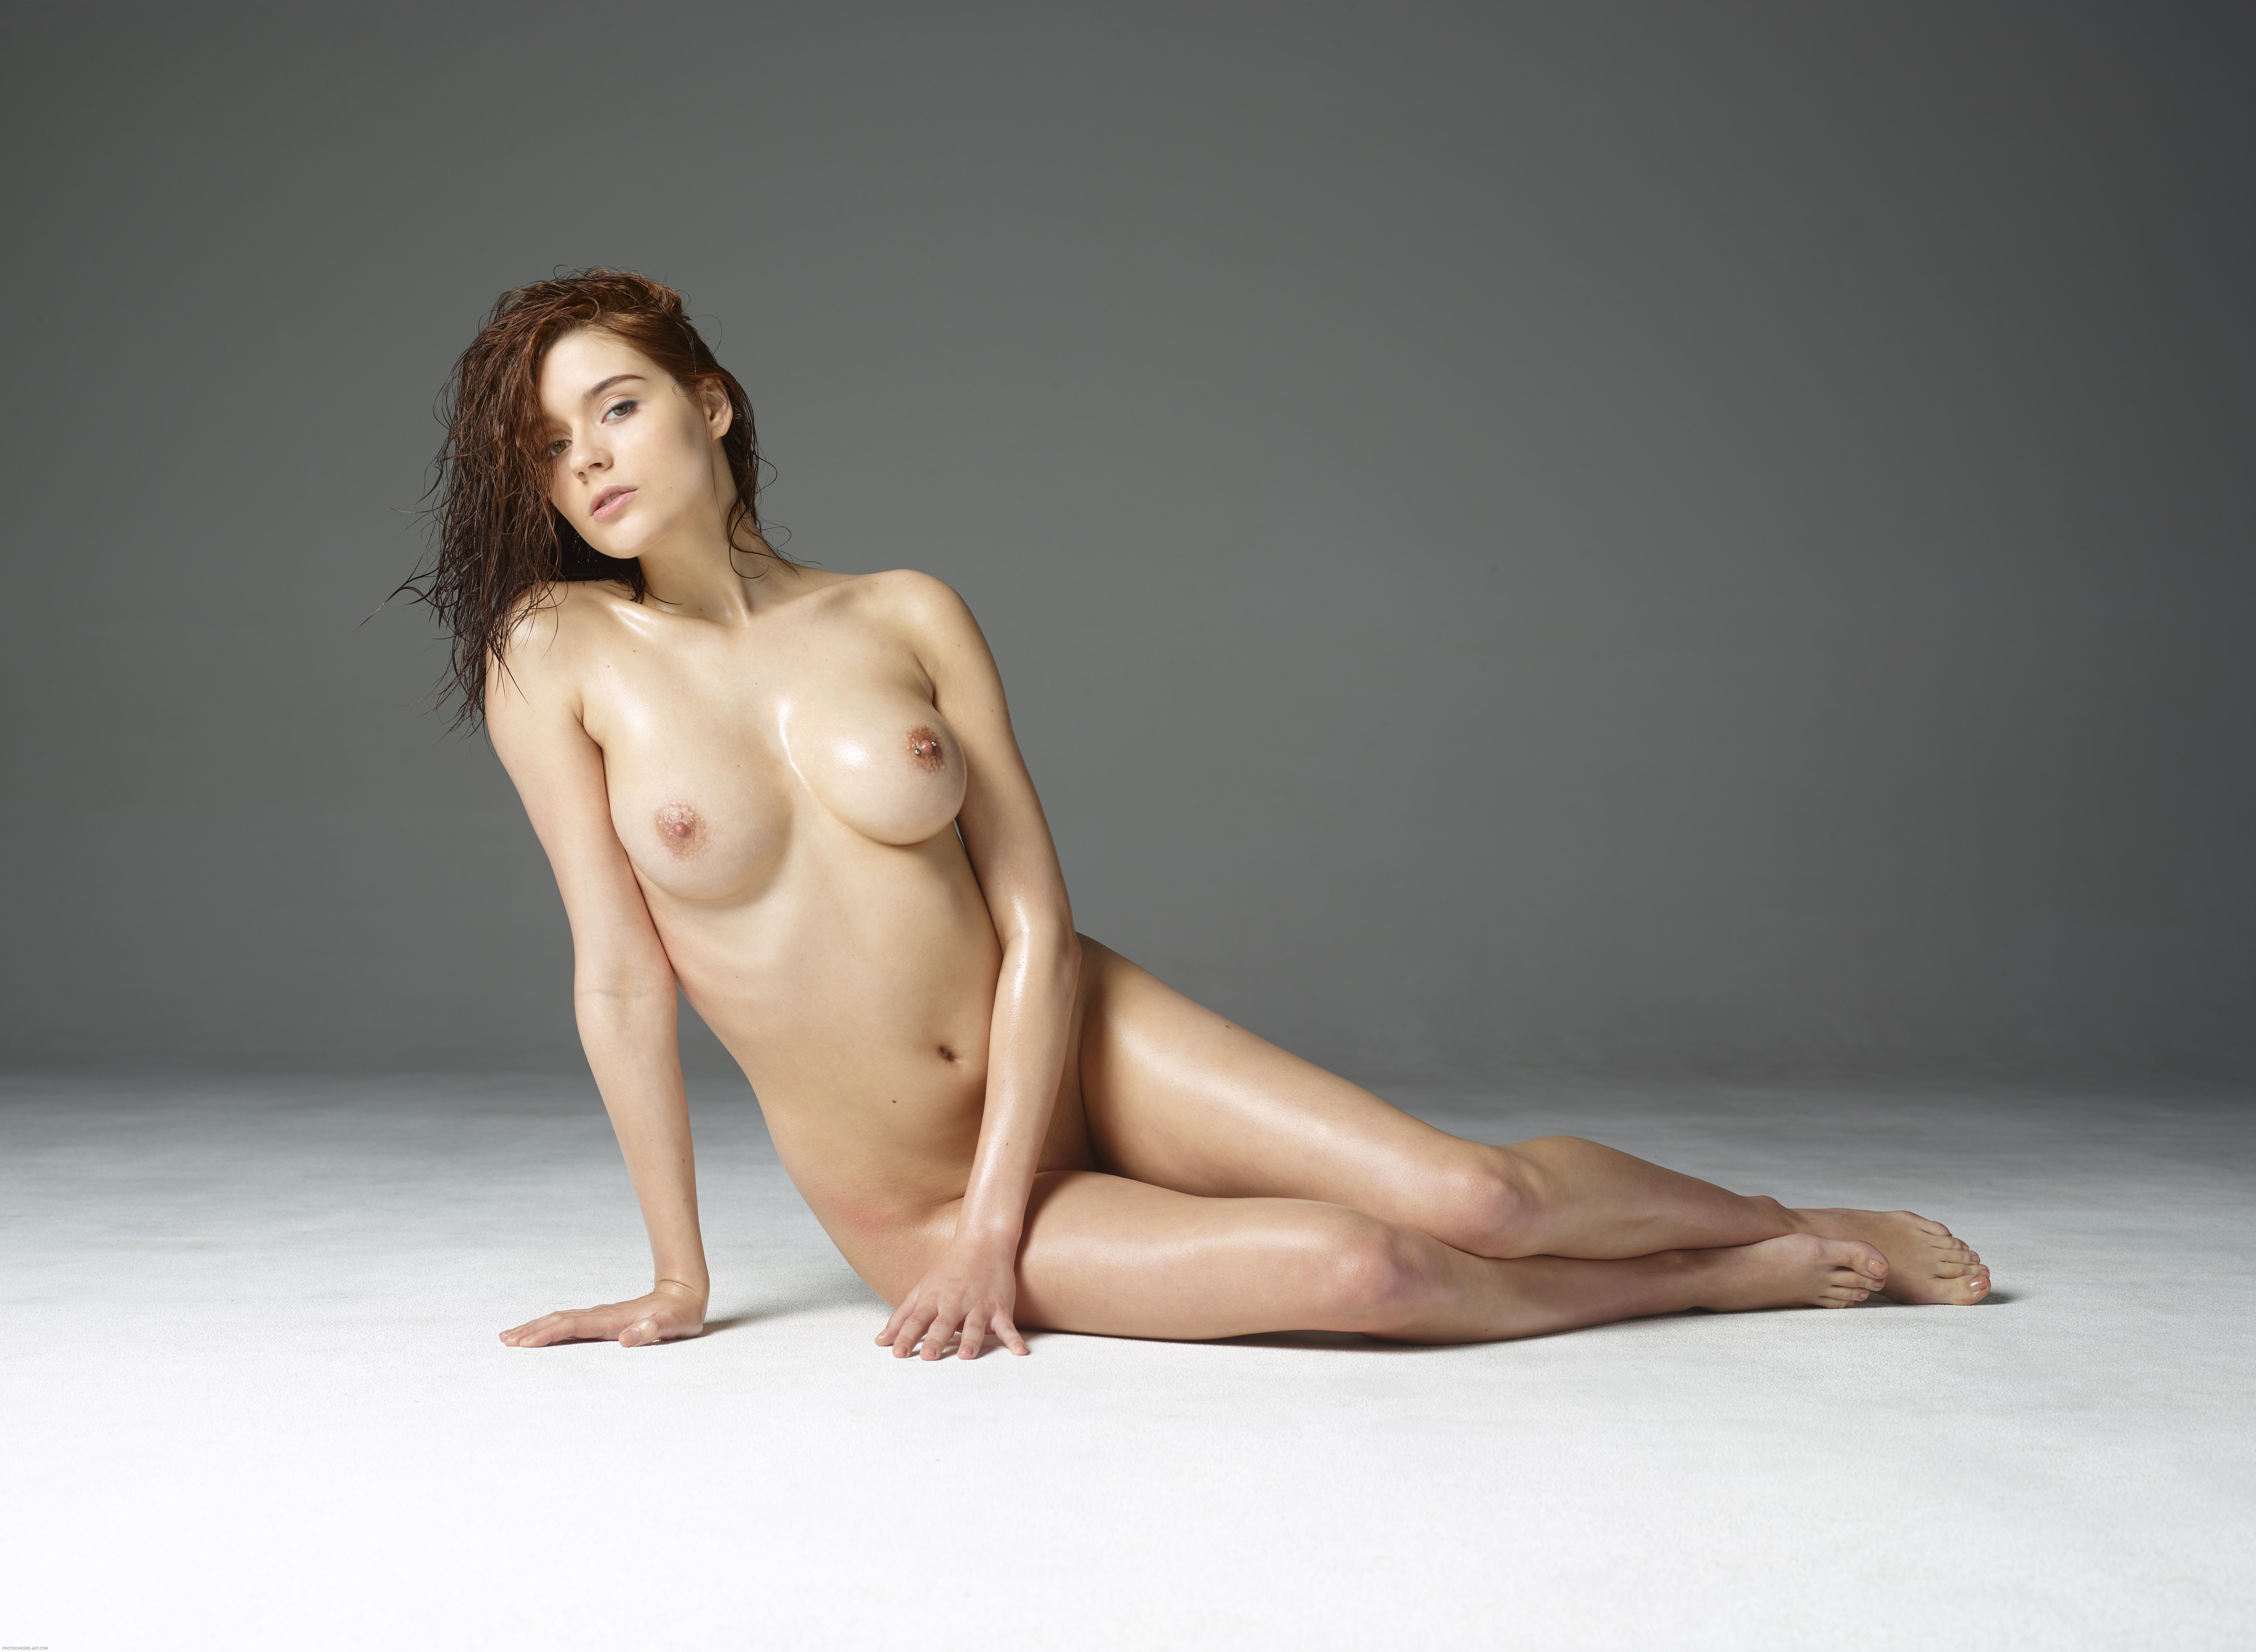 Other nude